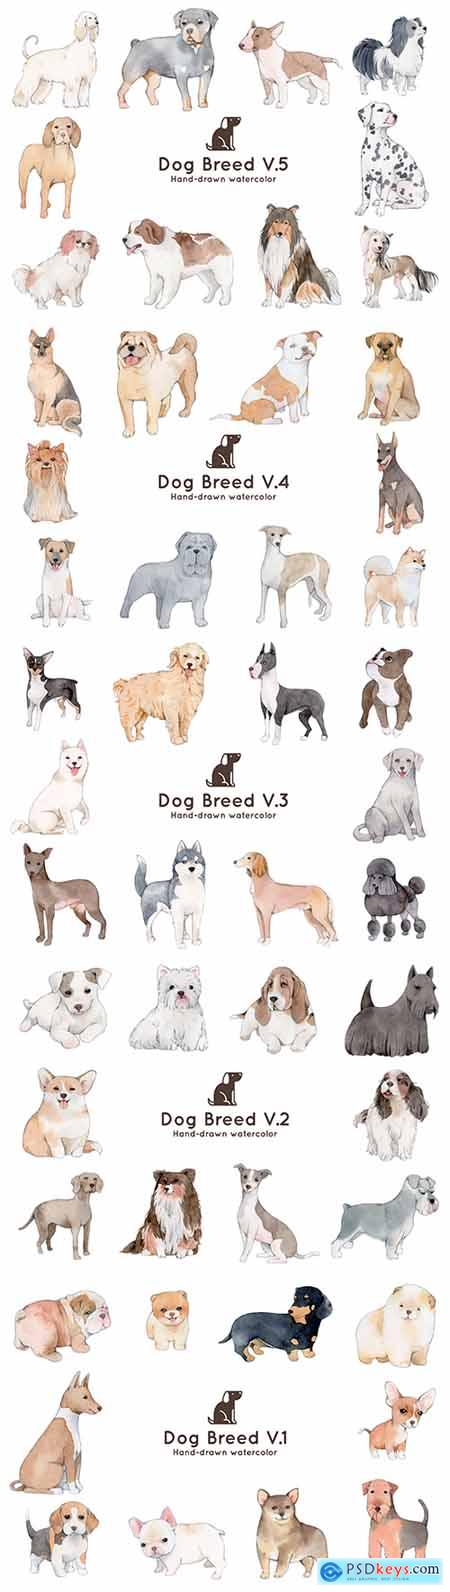 Breeds of different dogs watercolor illustration